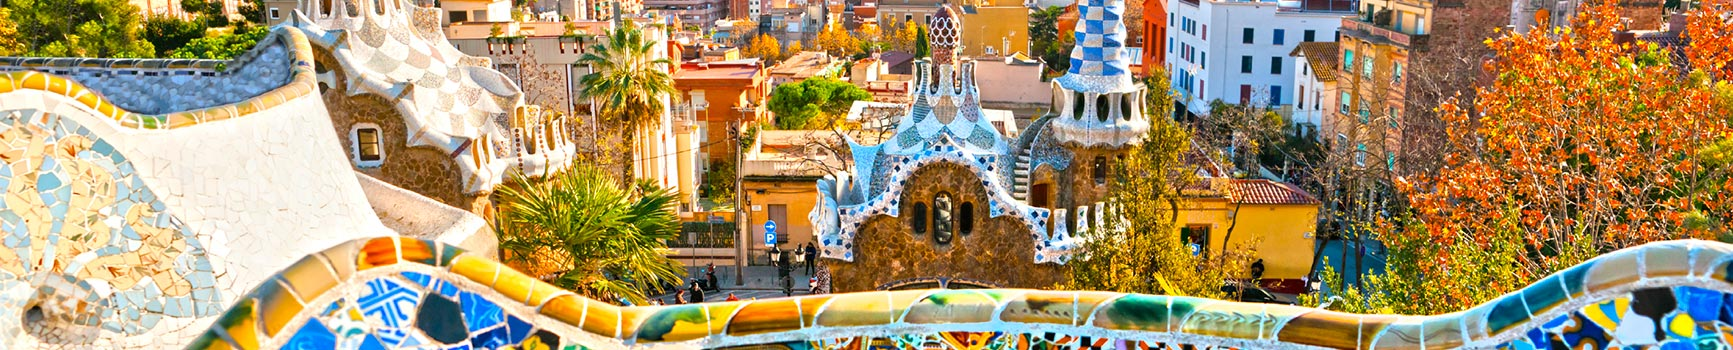 Spanish Courses in Barcelona | Study Spanish in Barcelona